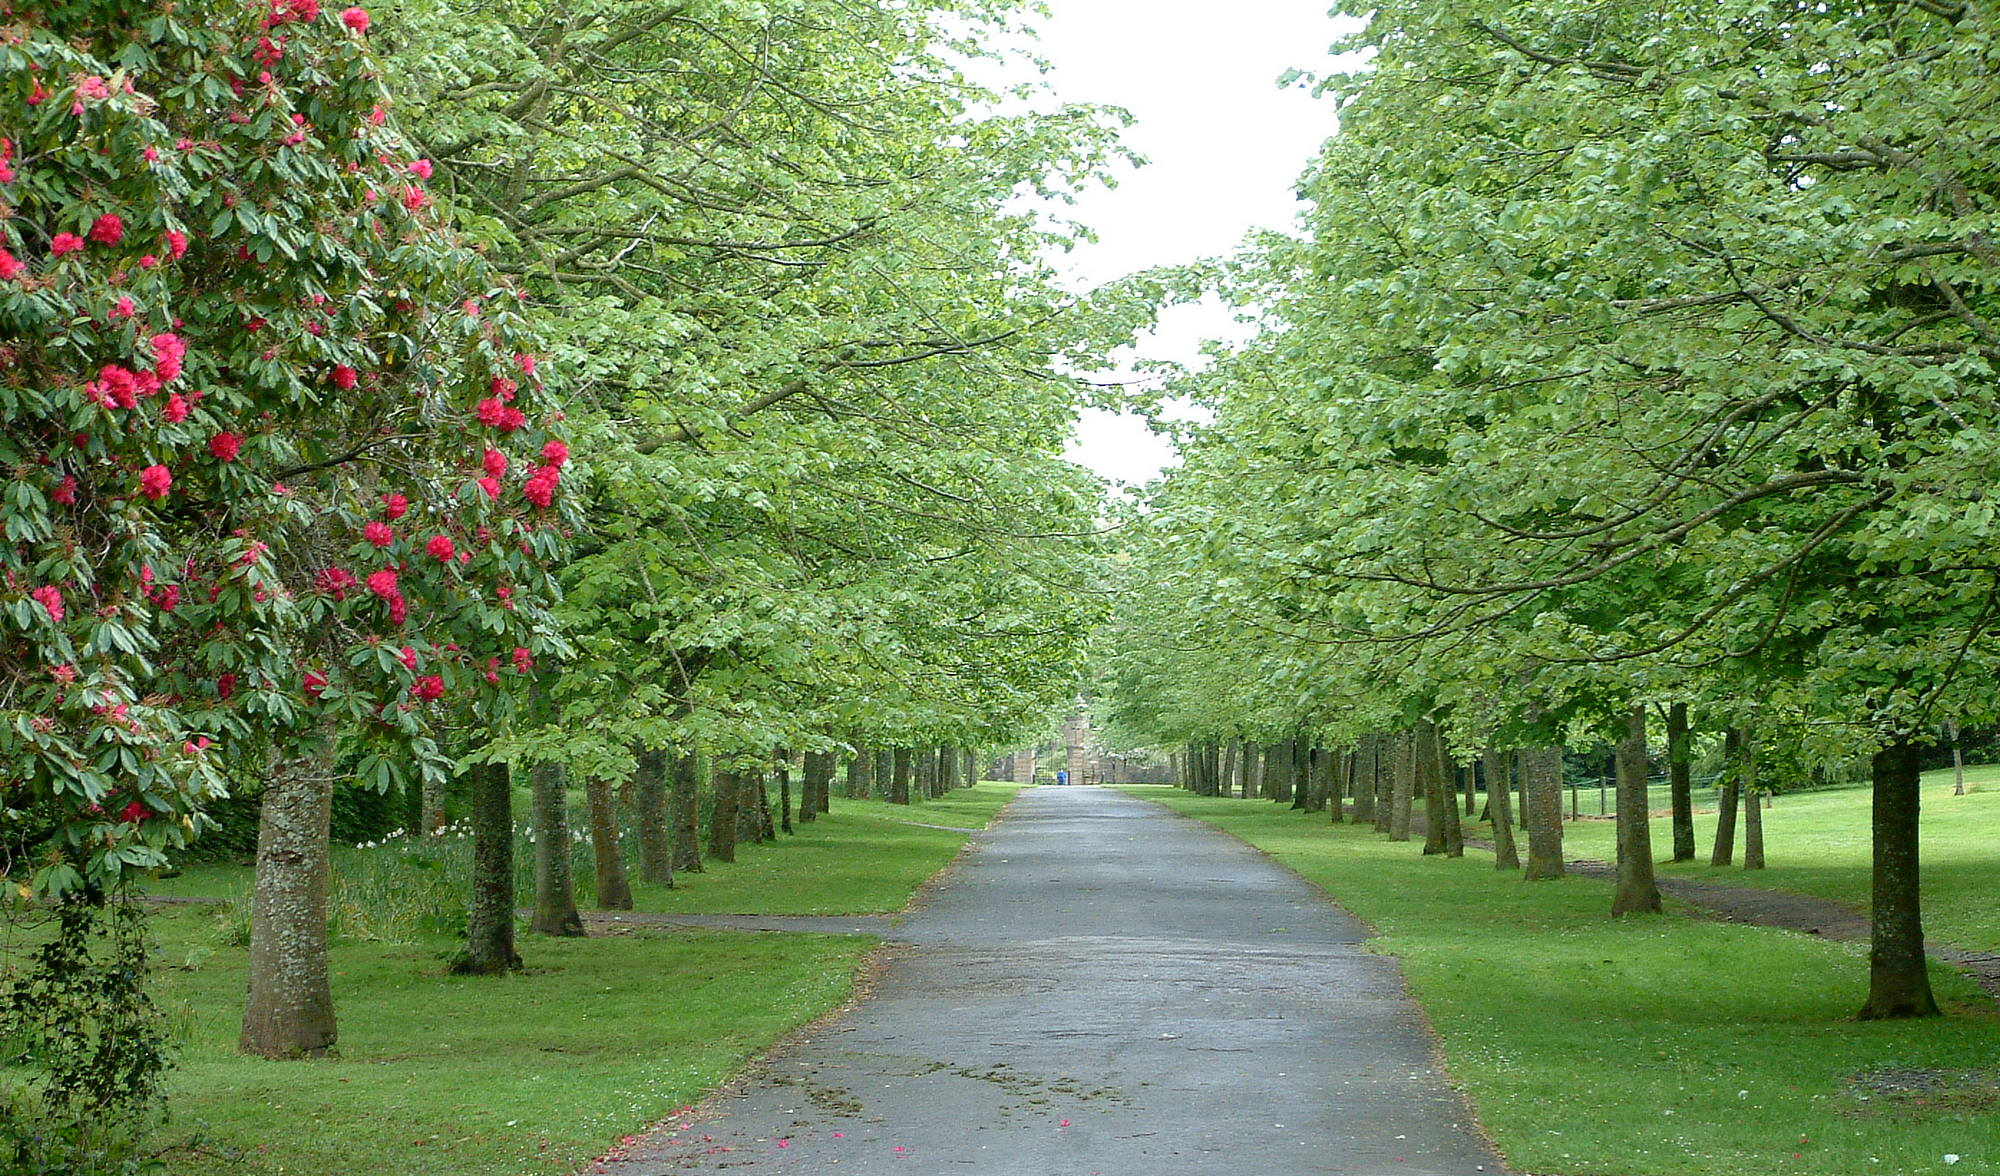 Avenue of trees at Culzean Castle